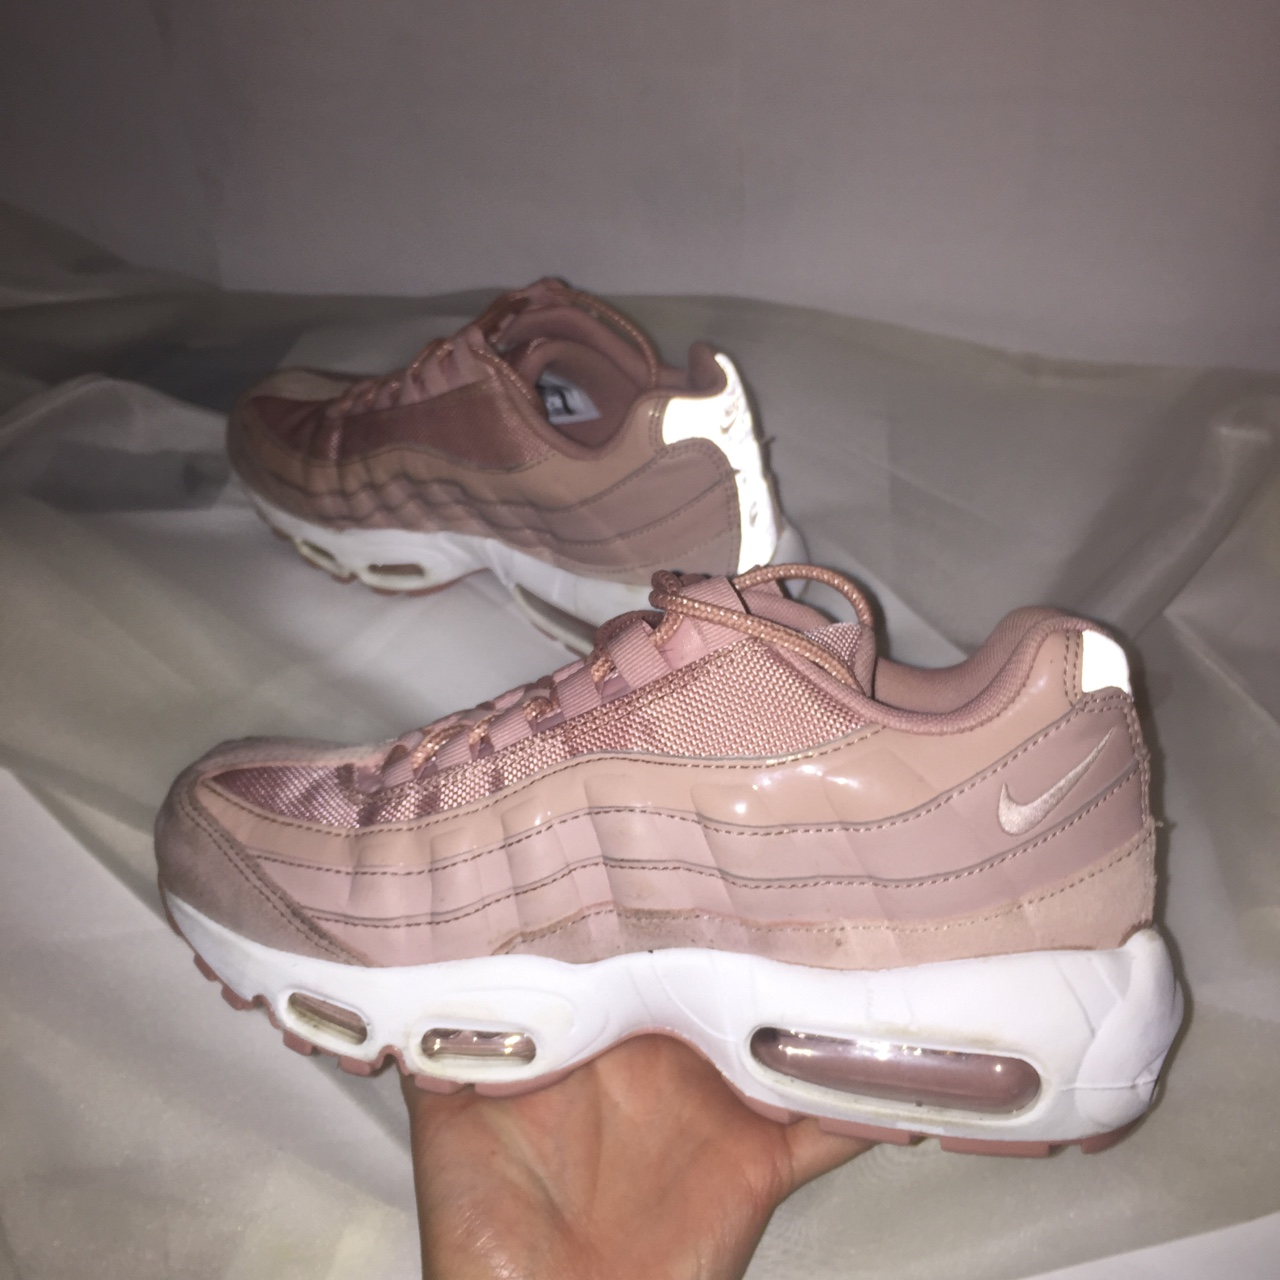 Nike Air Max 95's Pink Excellent